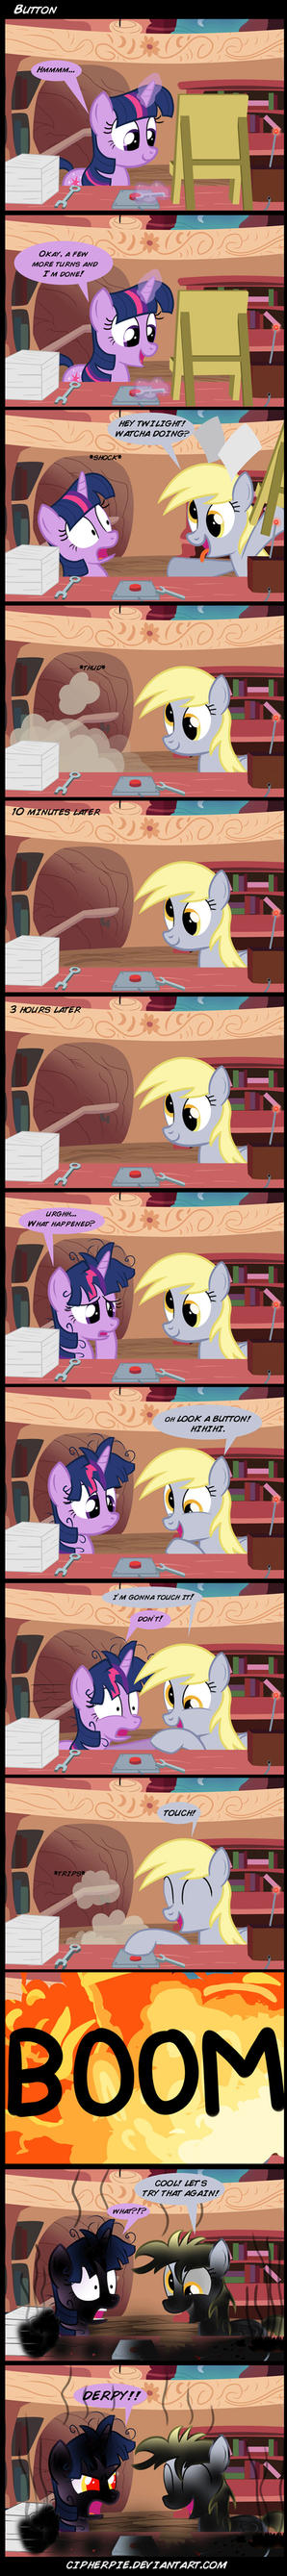 Button by cipherpie